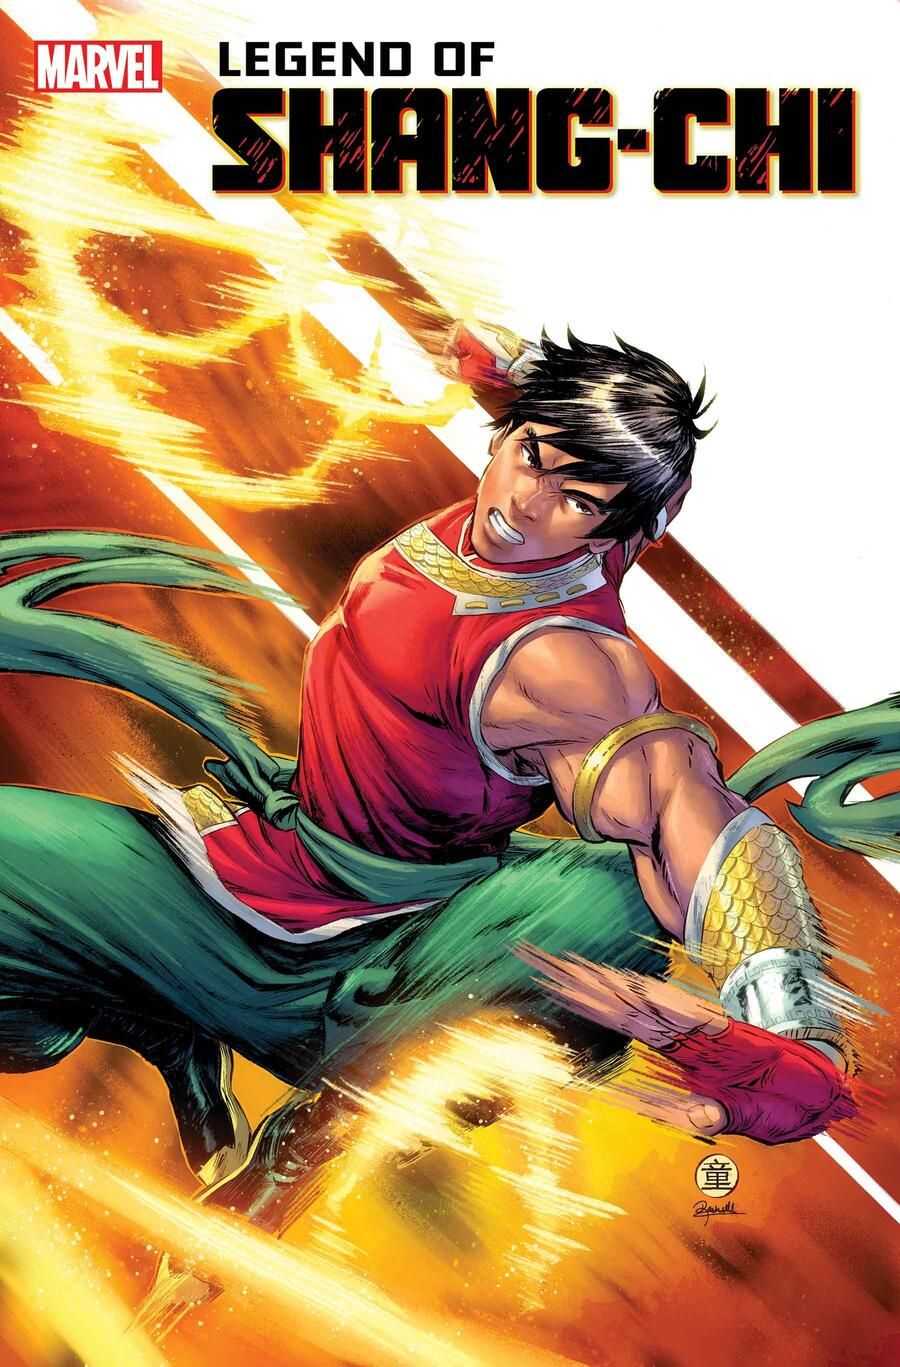 Cover for The Legend of Shang-Chi #1